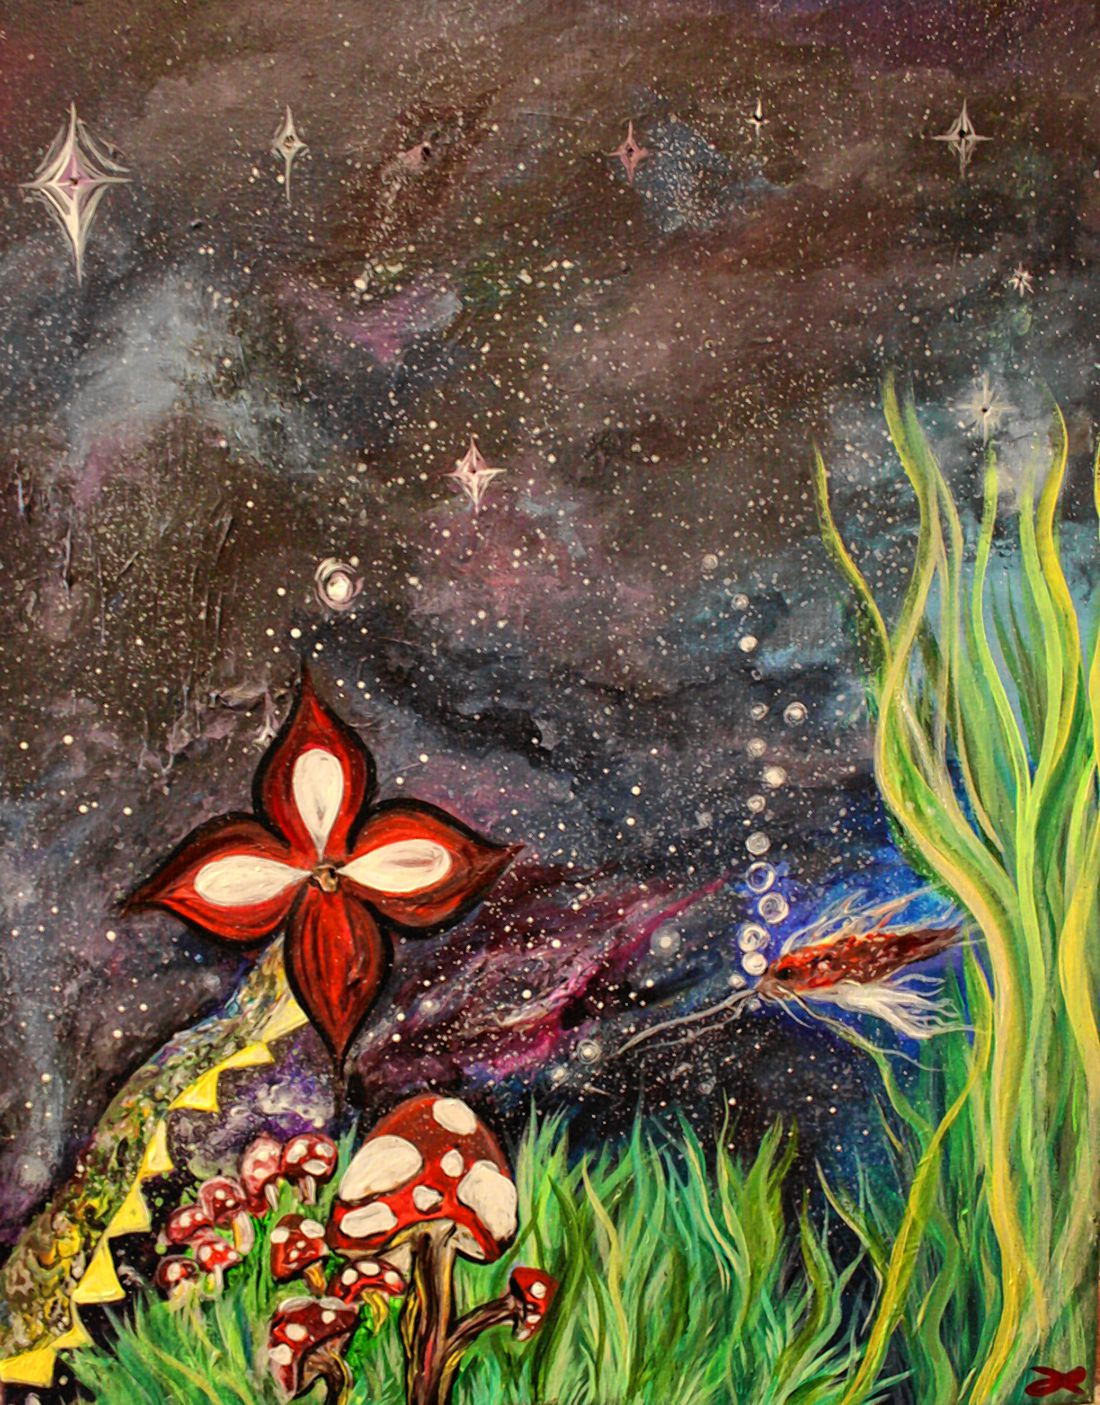 On Display: Paintings by Fallon Rae at Dos Amigos Burritos - The Concord Insider